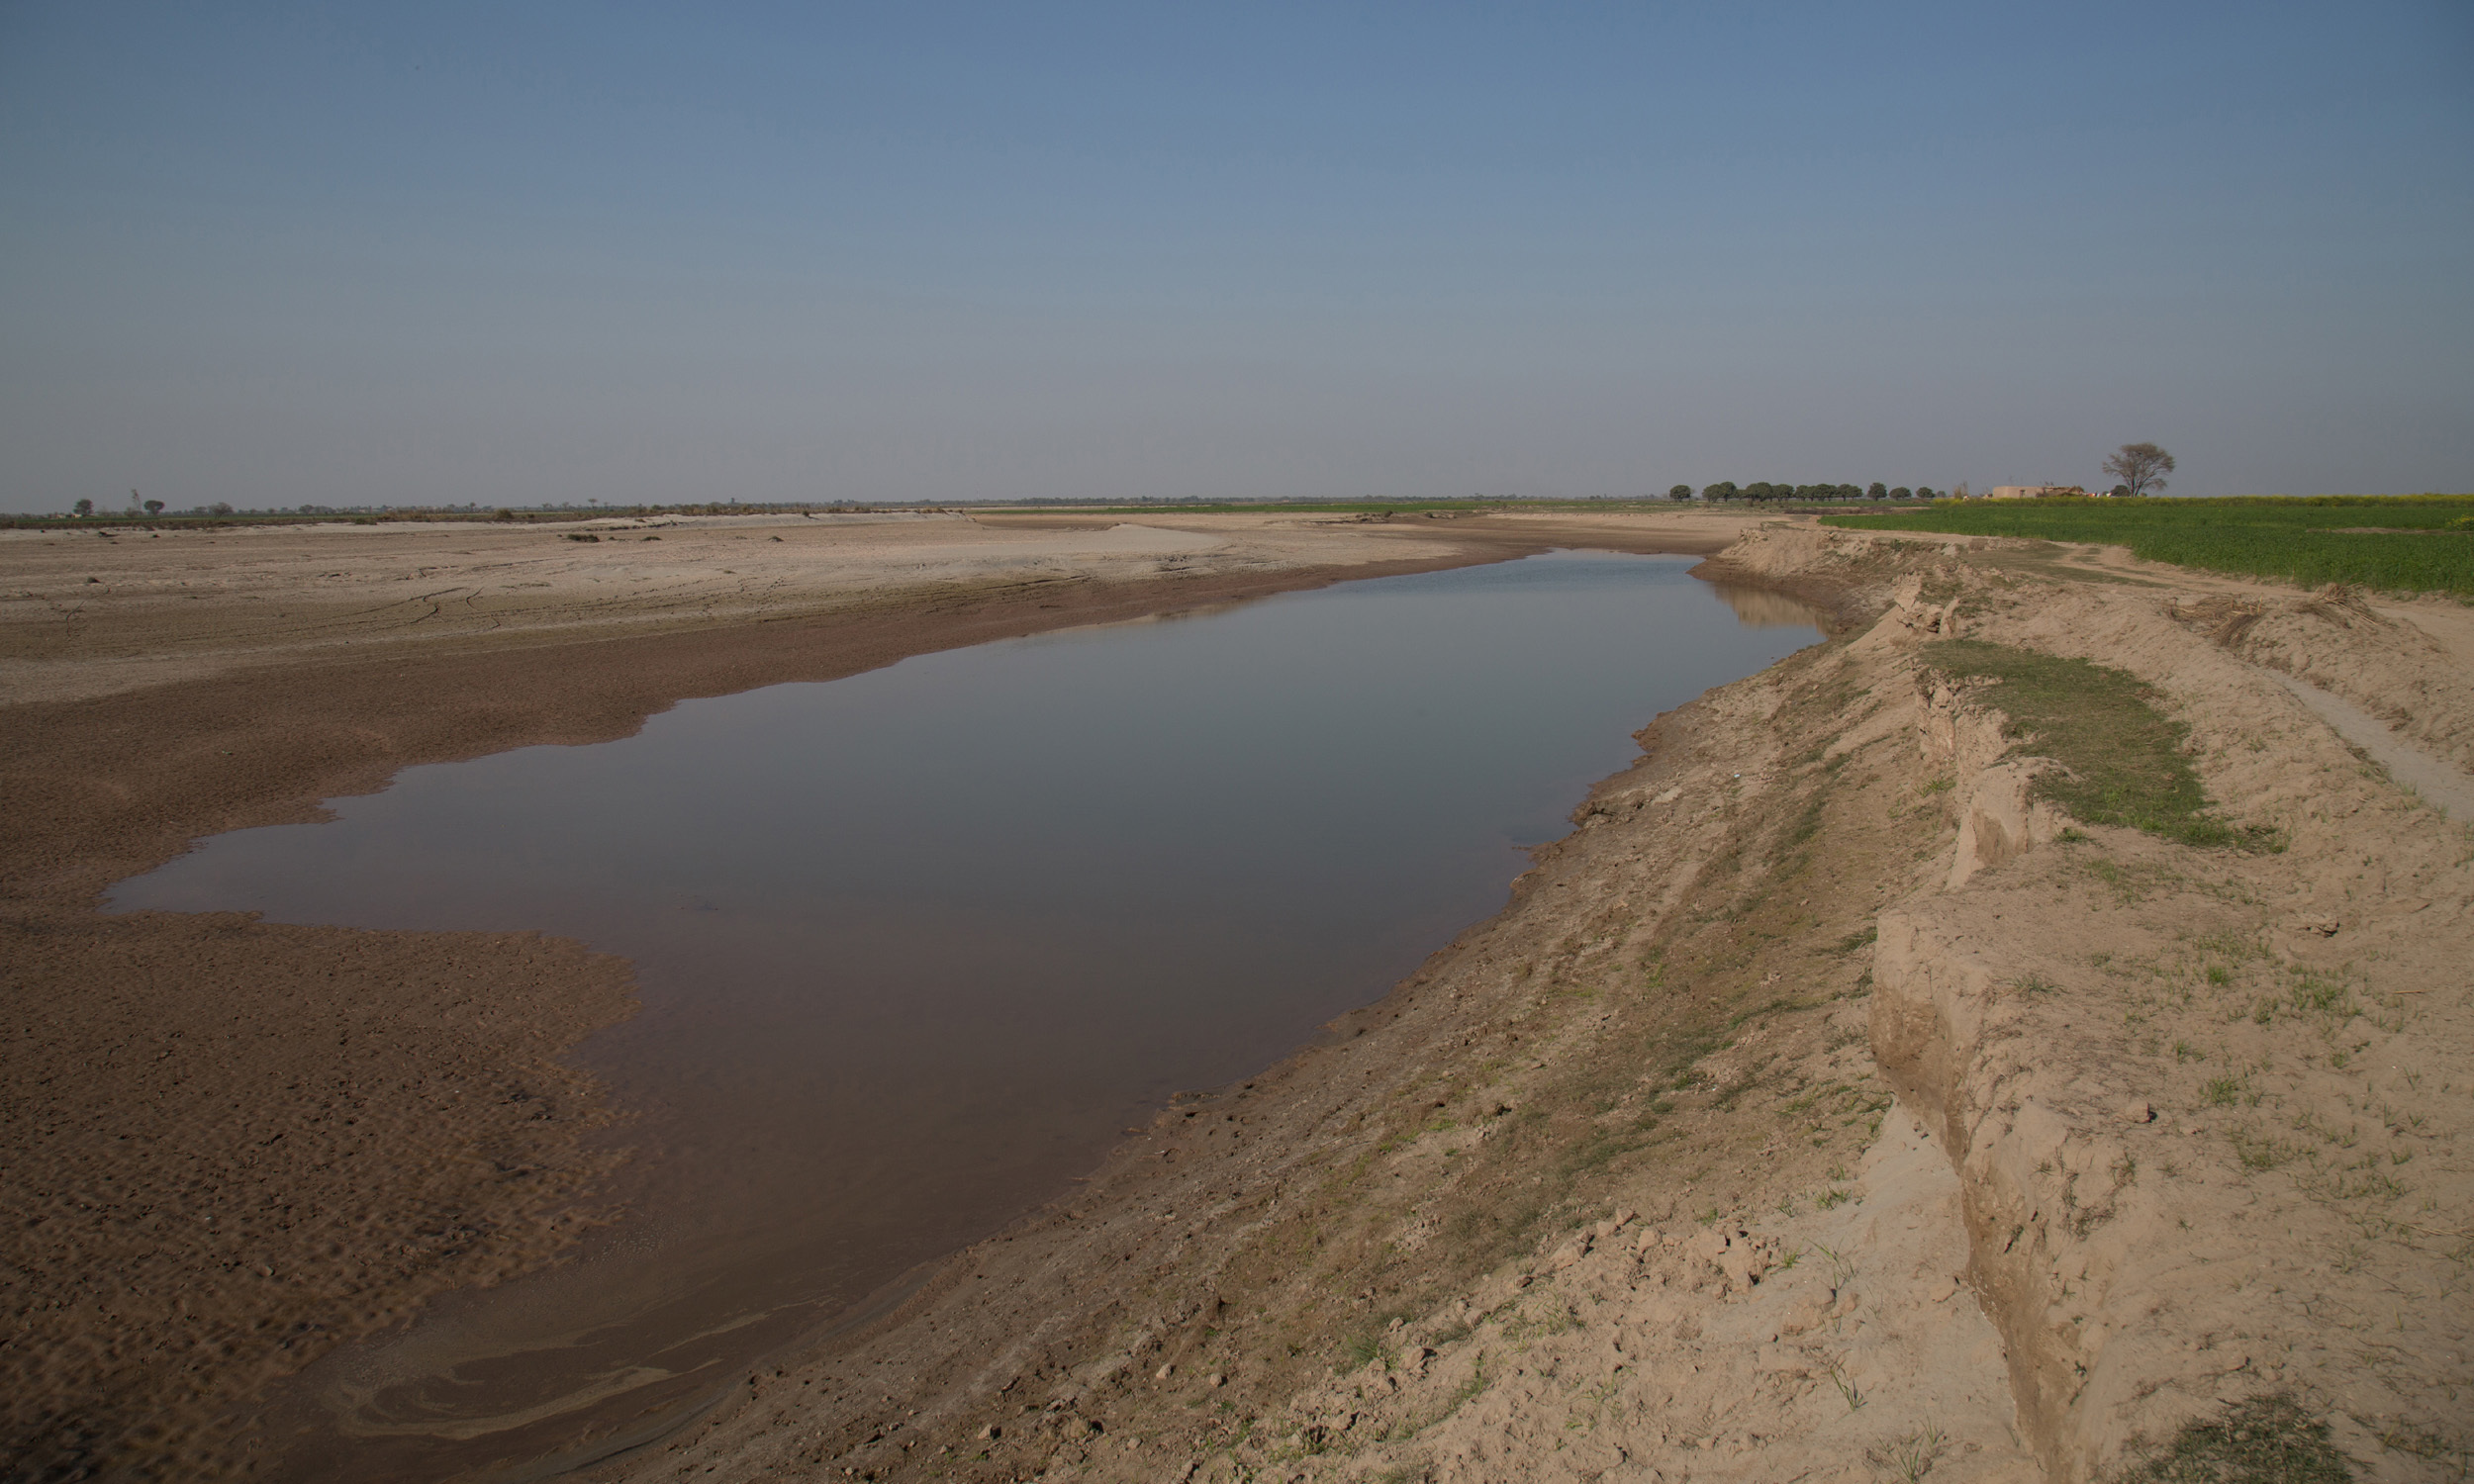 Embankment built in Badin to protect lands from the intrusion of sea water